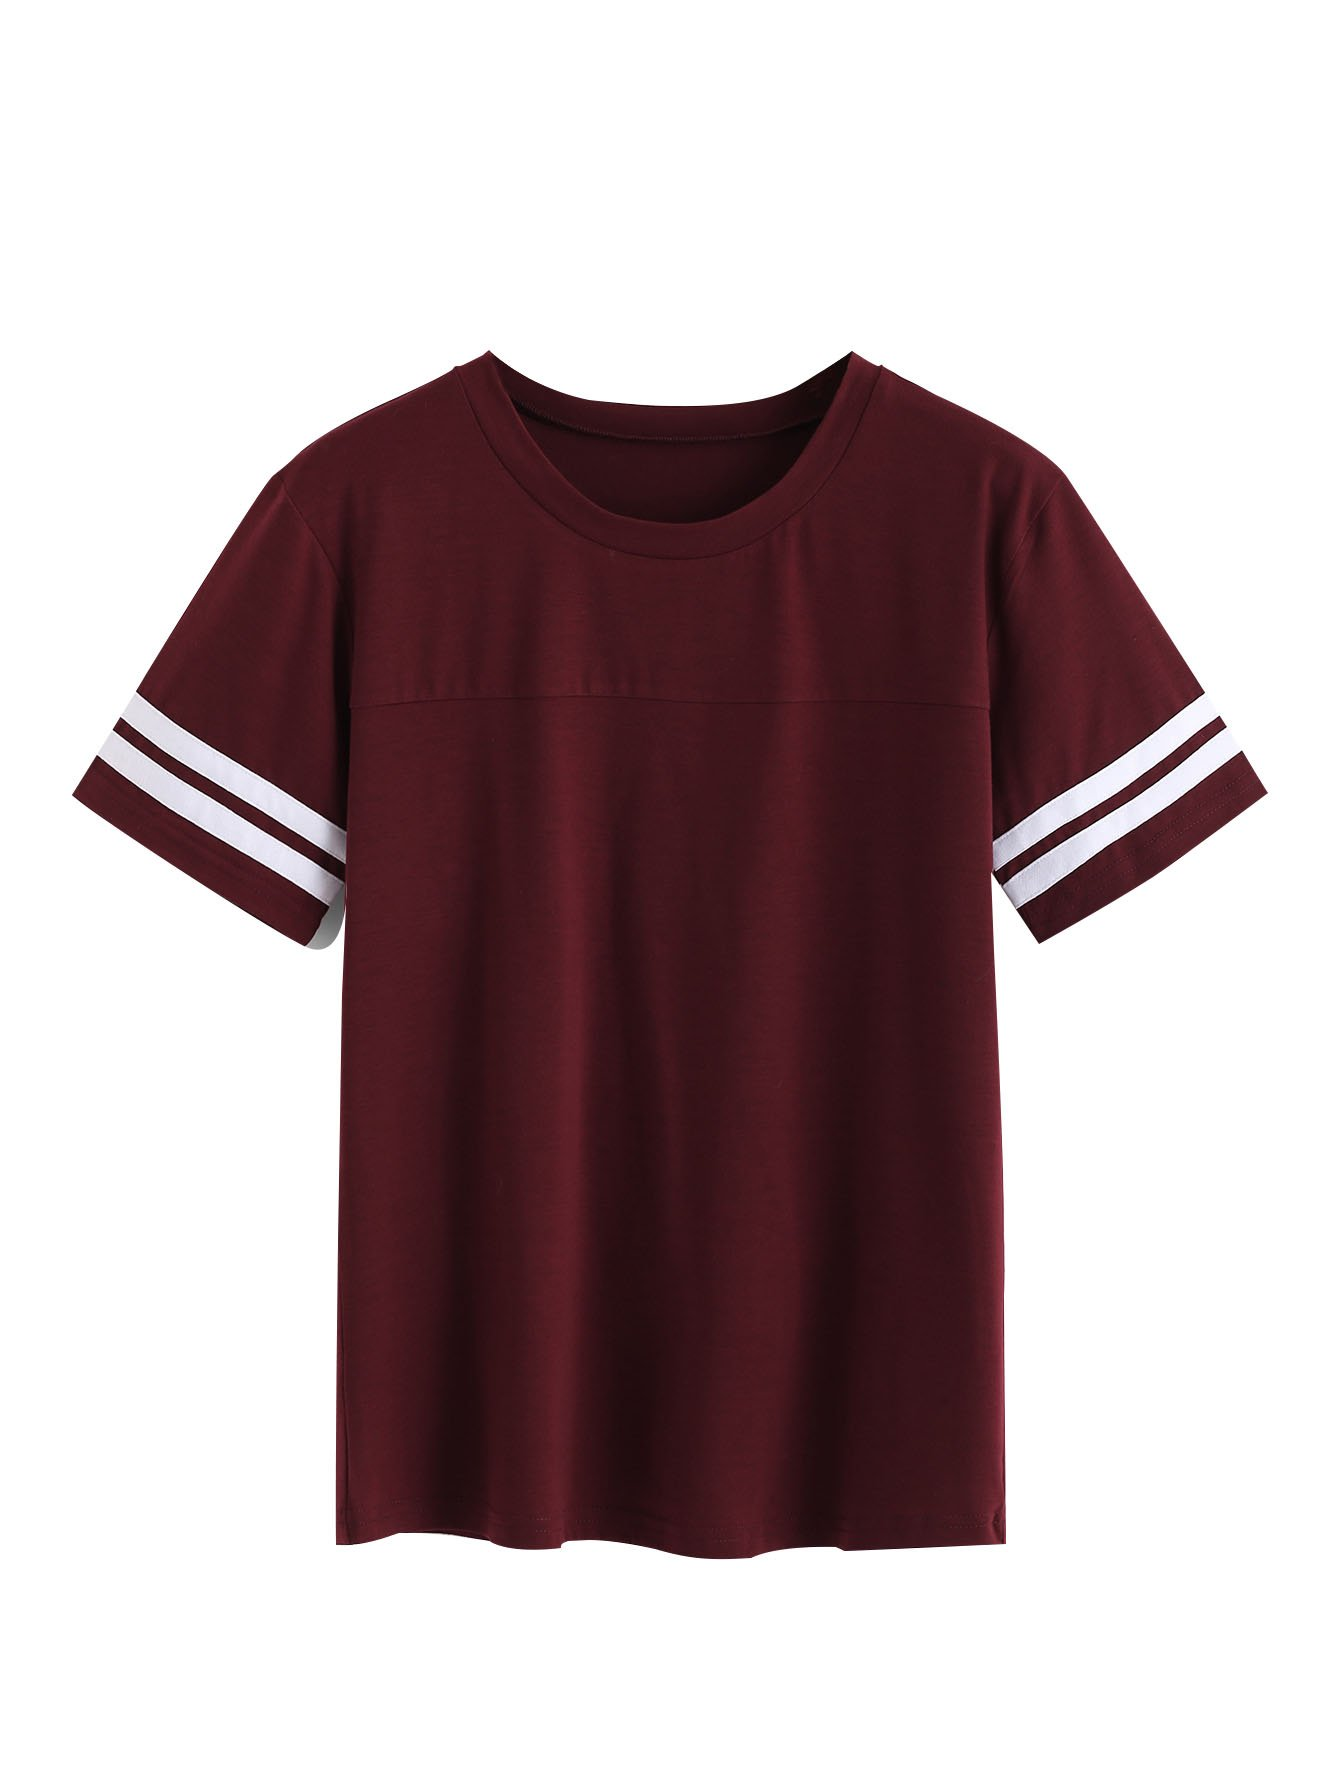 Romwe Women's Casual Striped Contrast Short Sleeve Round Neck Top Tee T-Shirt Burgundy X-Large